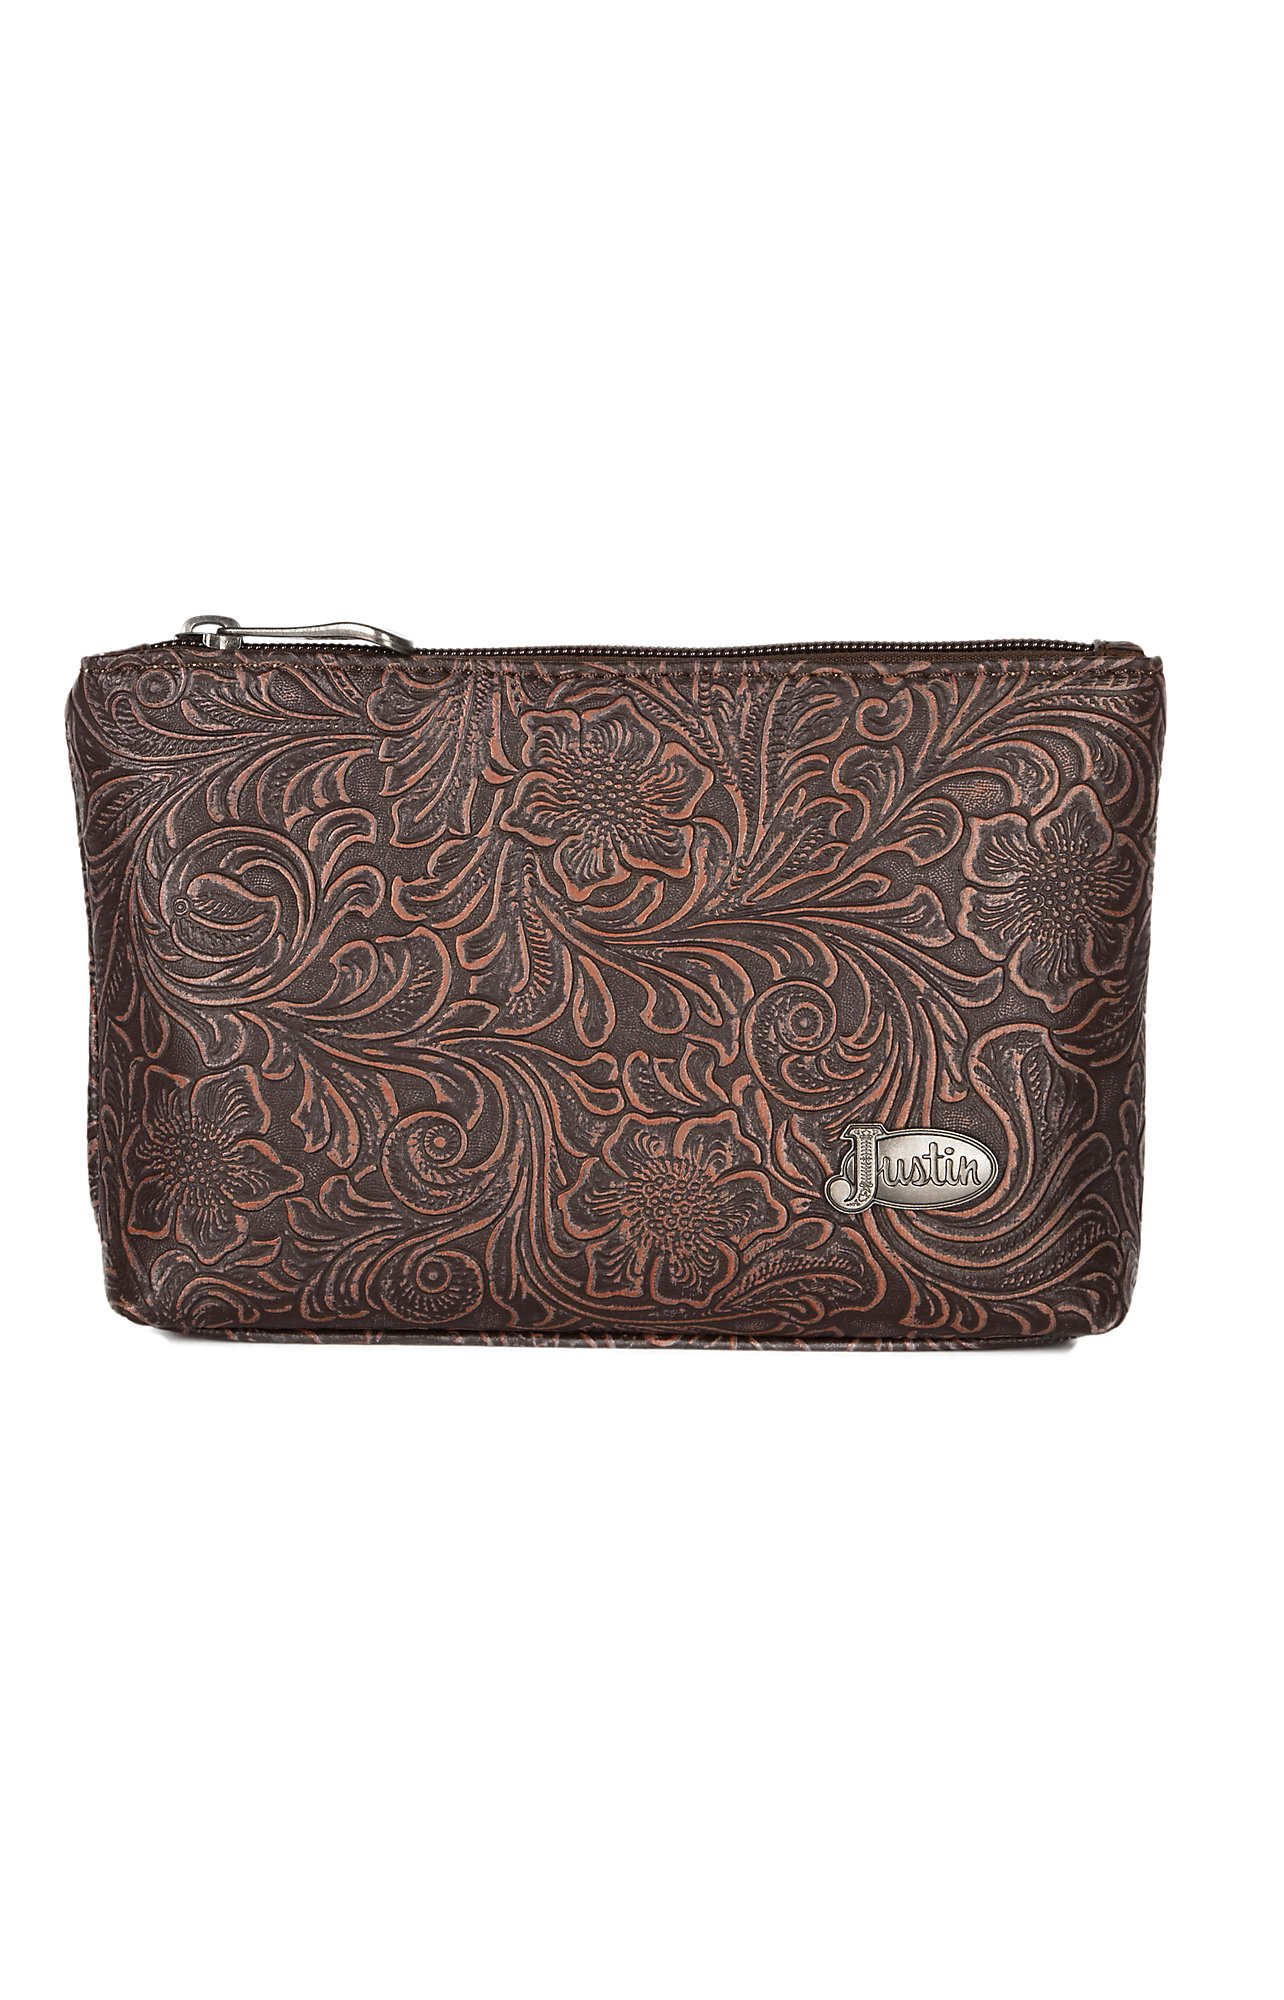 92b33aeb2e2 Justin Small Tooled Cosmetic Bag   Cavender s